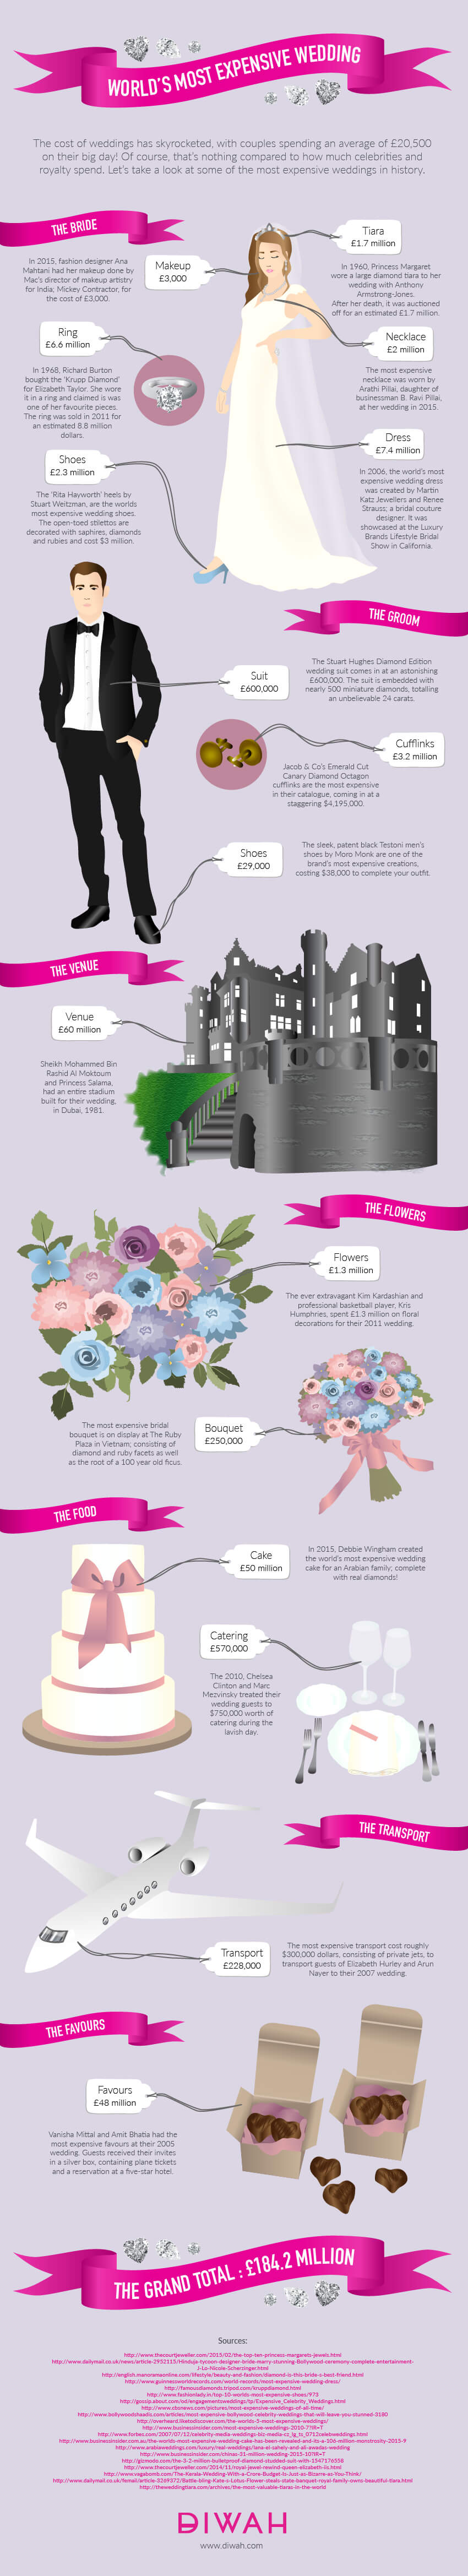 worlds-most-expensive-wedding-infographic-plaza